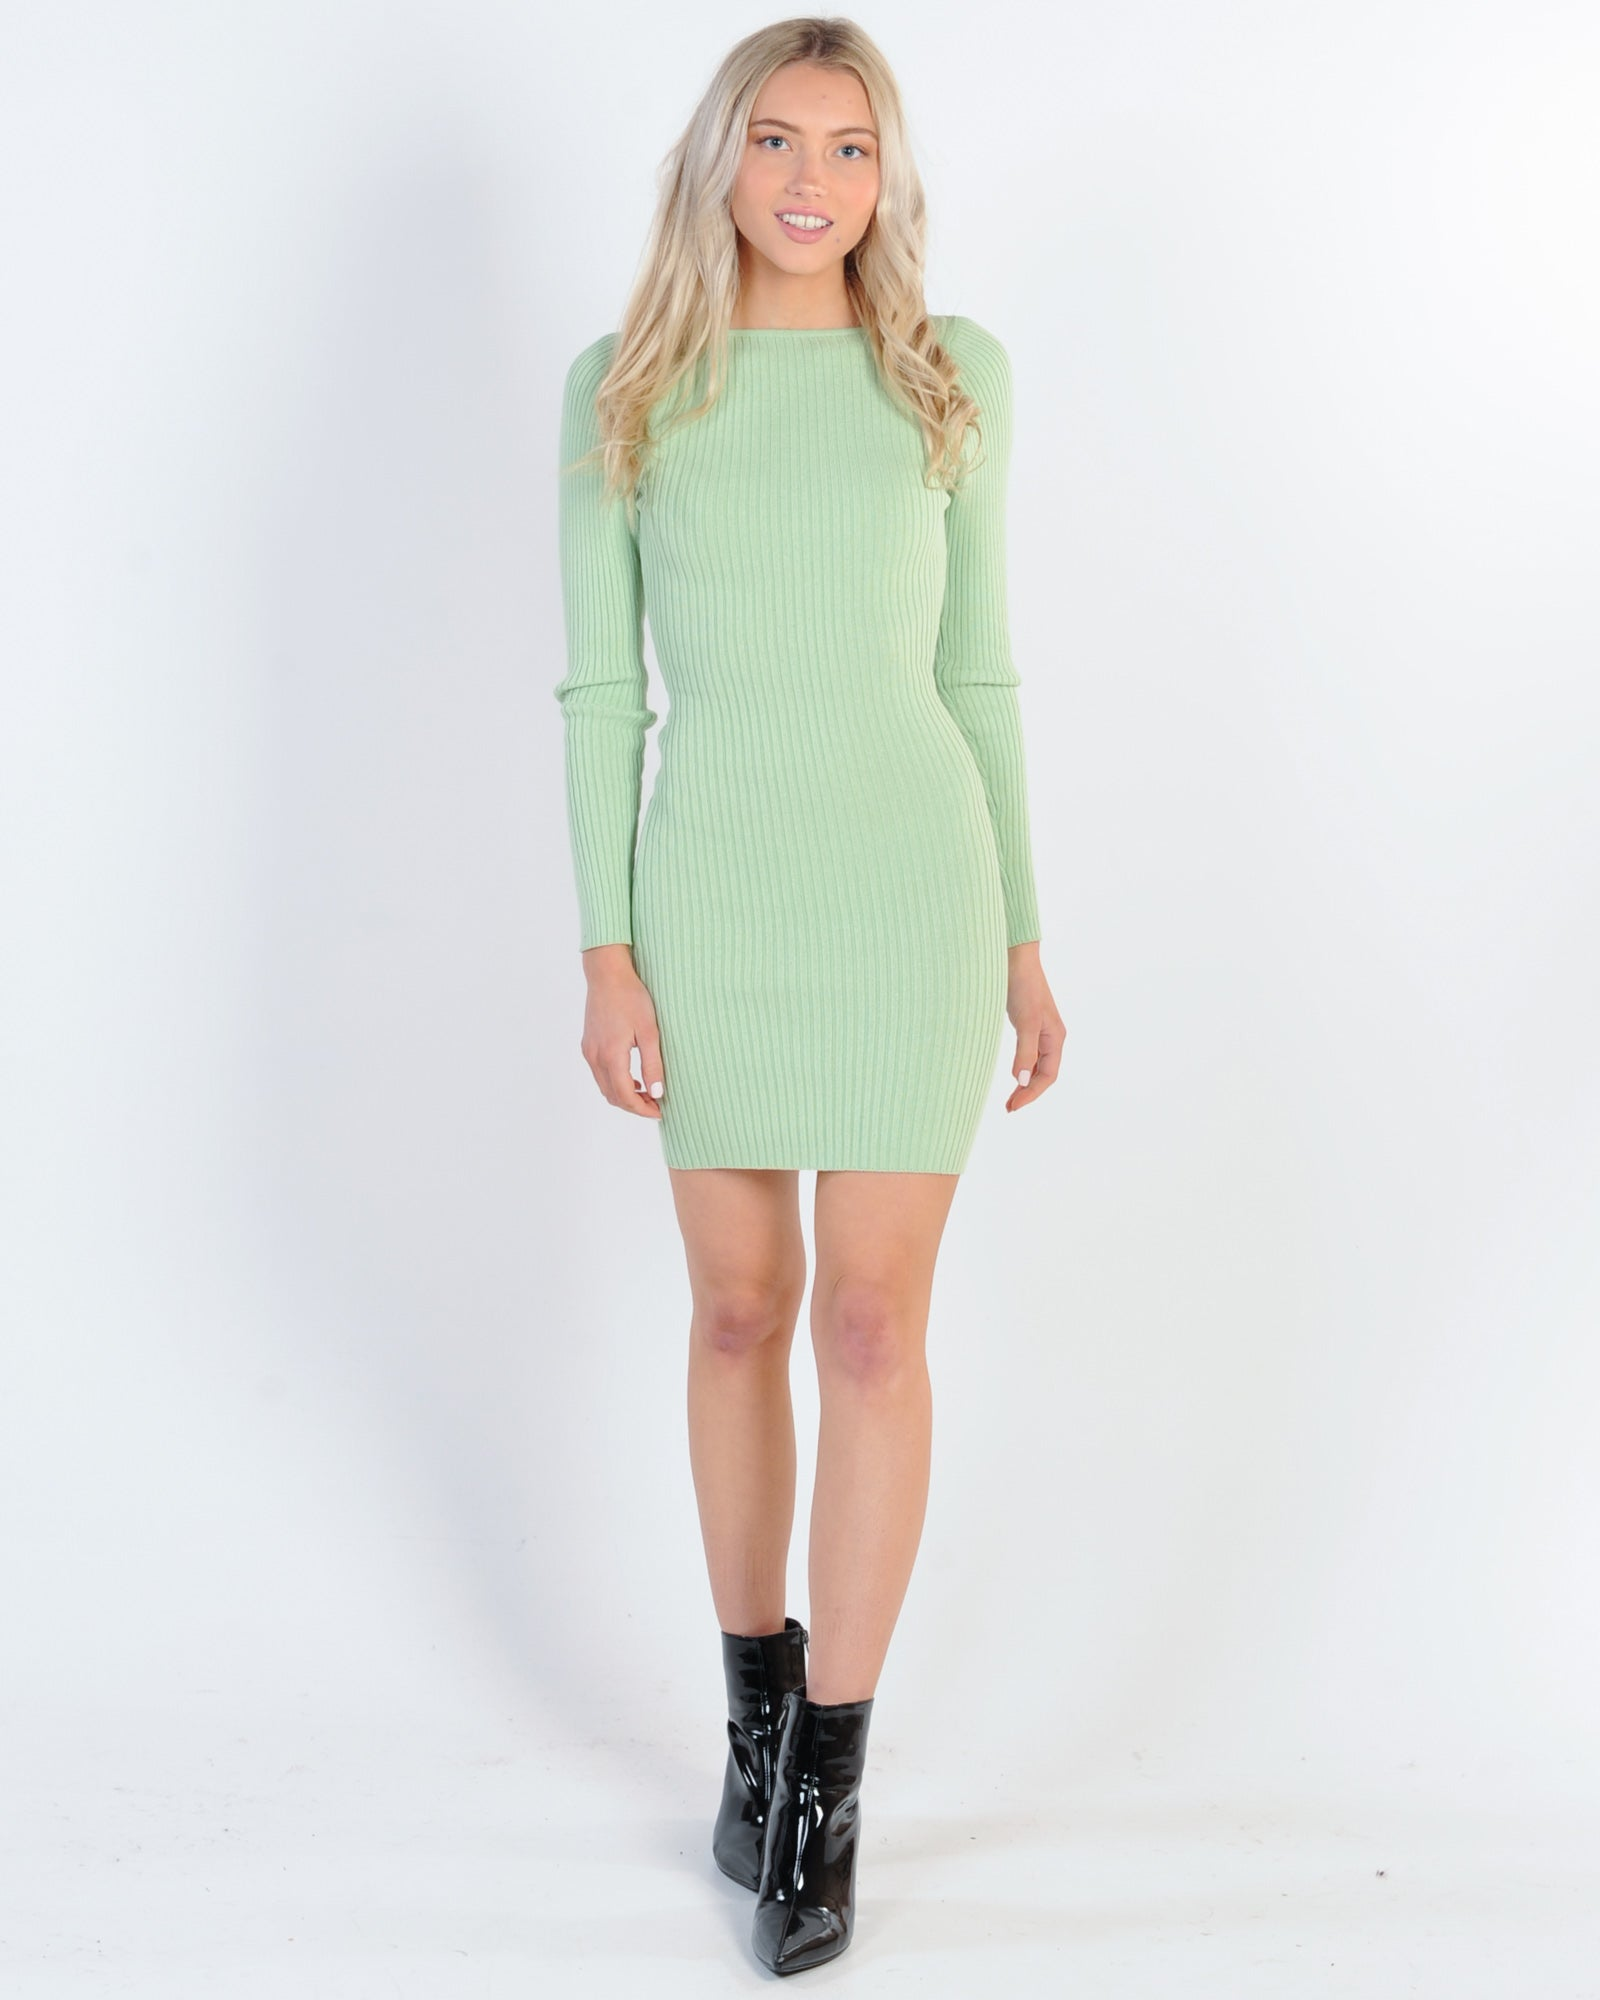 Drinks With Friends Dress - Mint